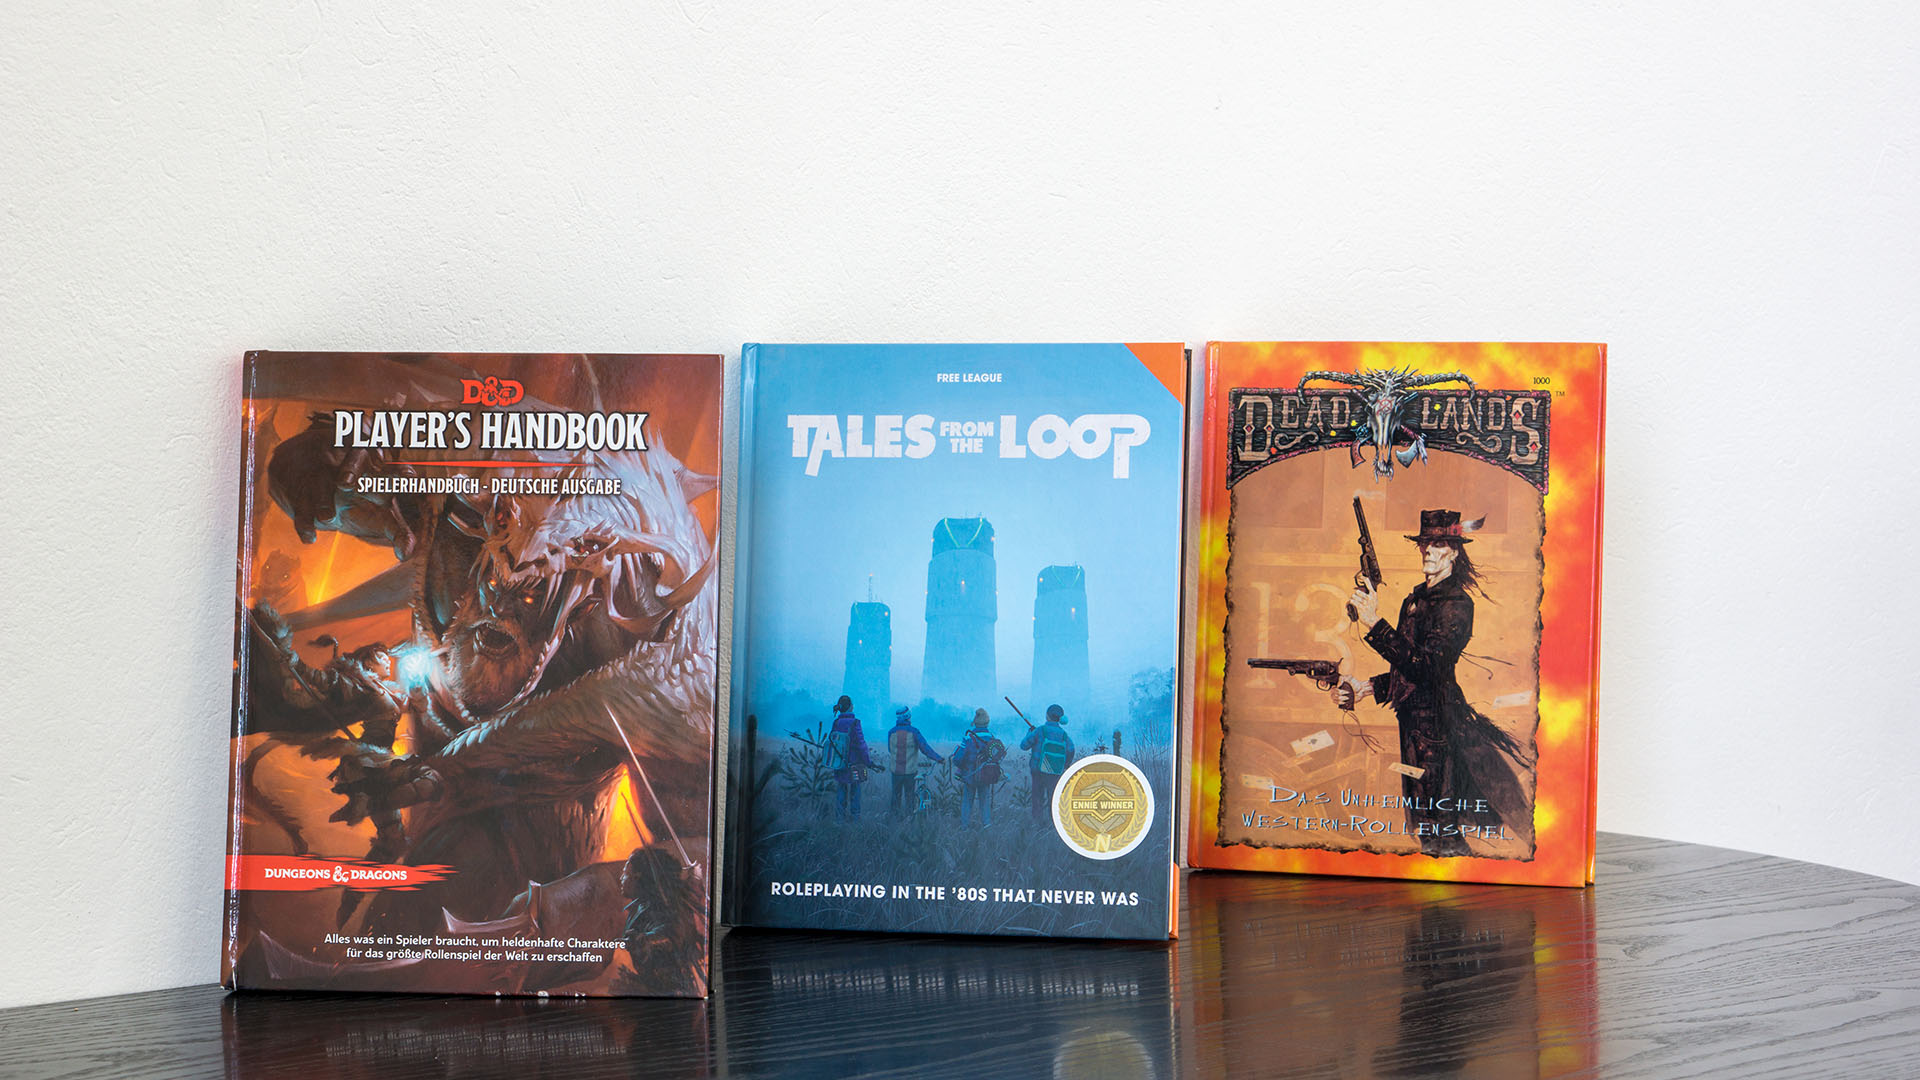 Core Rulebooks - Dungeons and Dragons, Tales from the Loop, Dead Lands